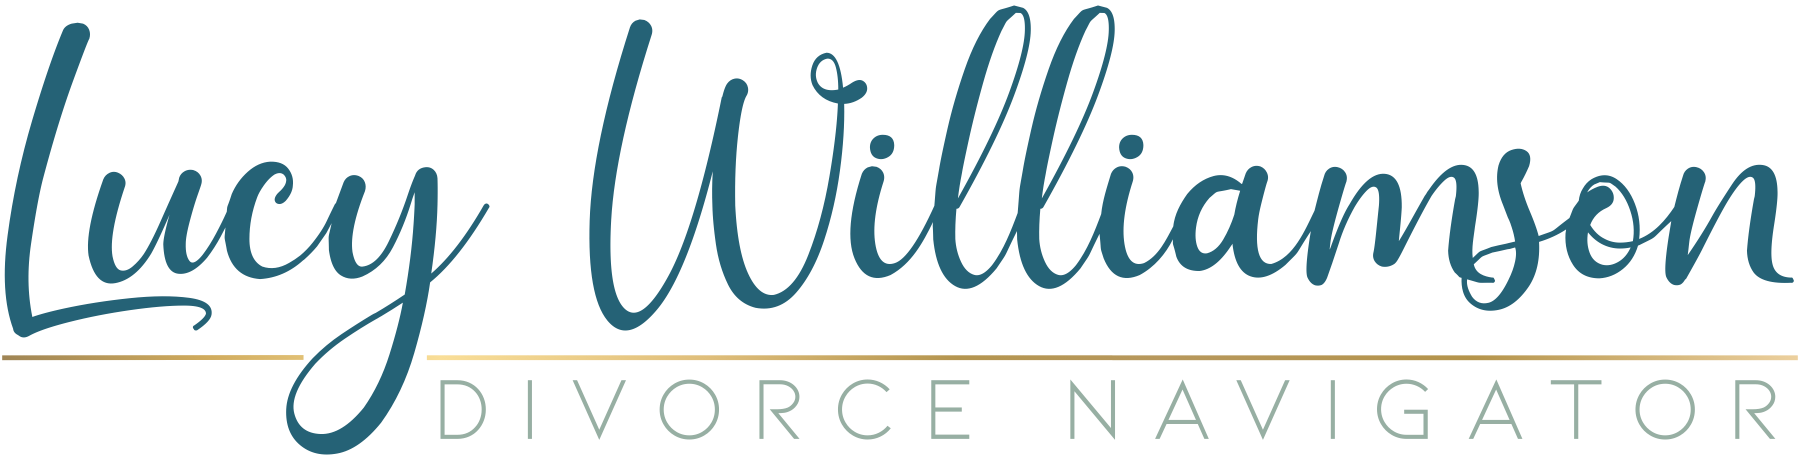 Lucy Williamson - Divorce Navigator